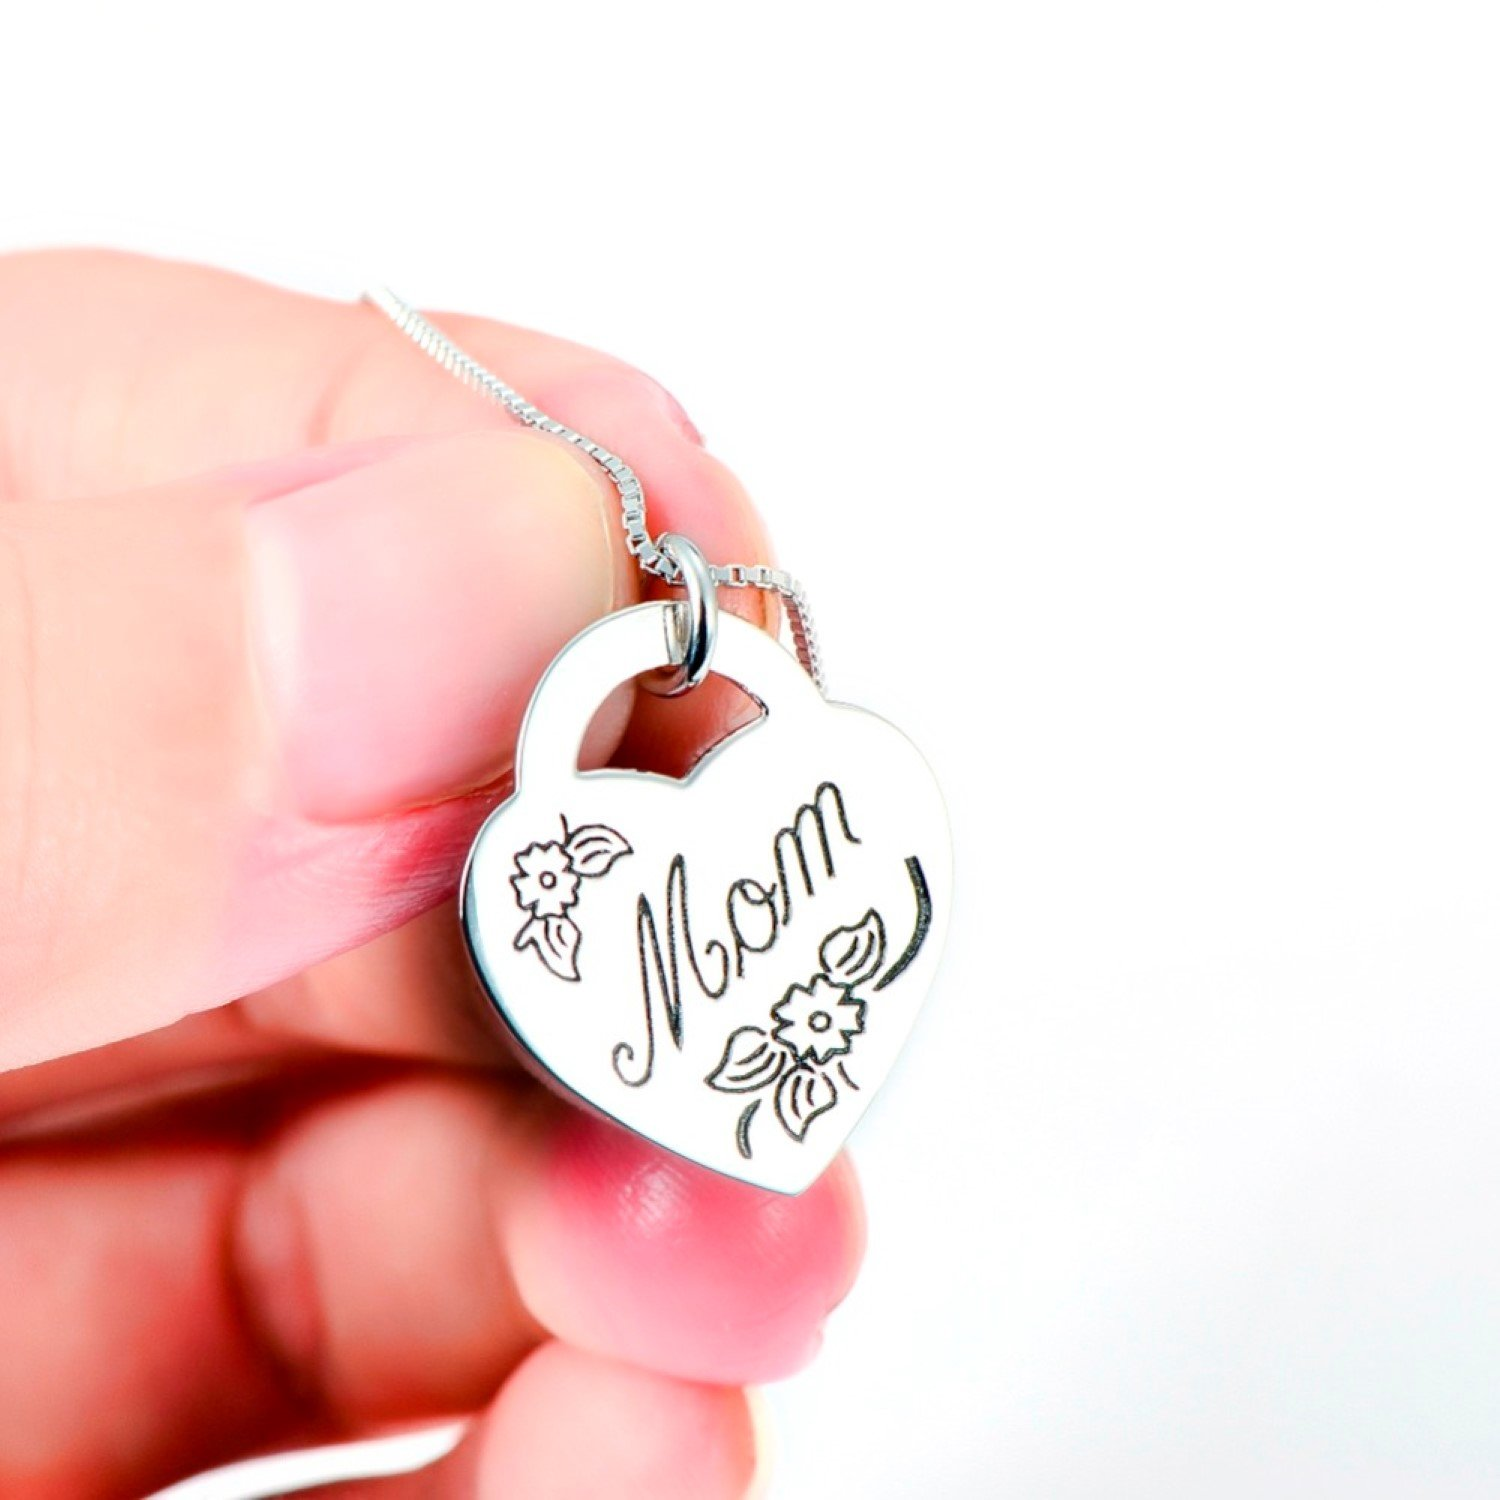 CS-DB Silver Necklaces Pendants Love Heart with Flower Pattern Pendent